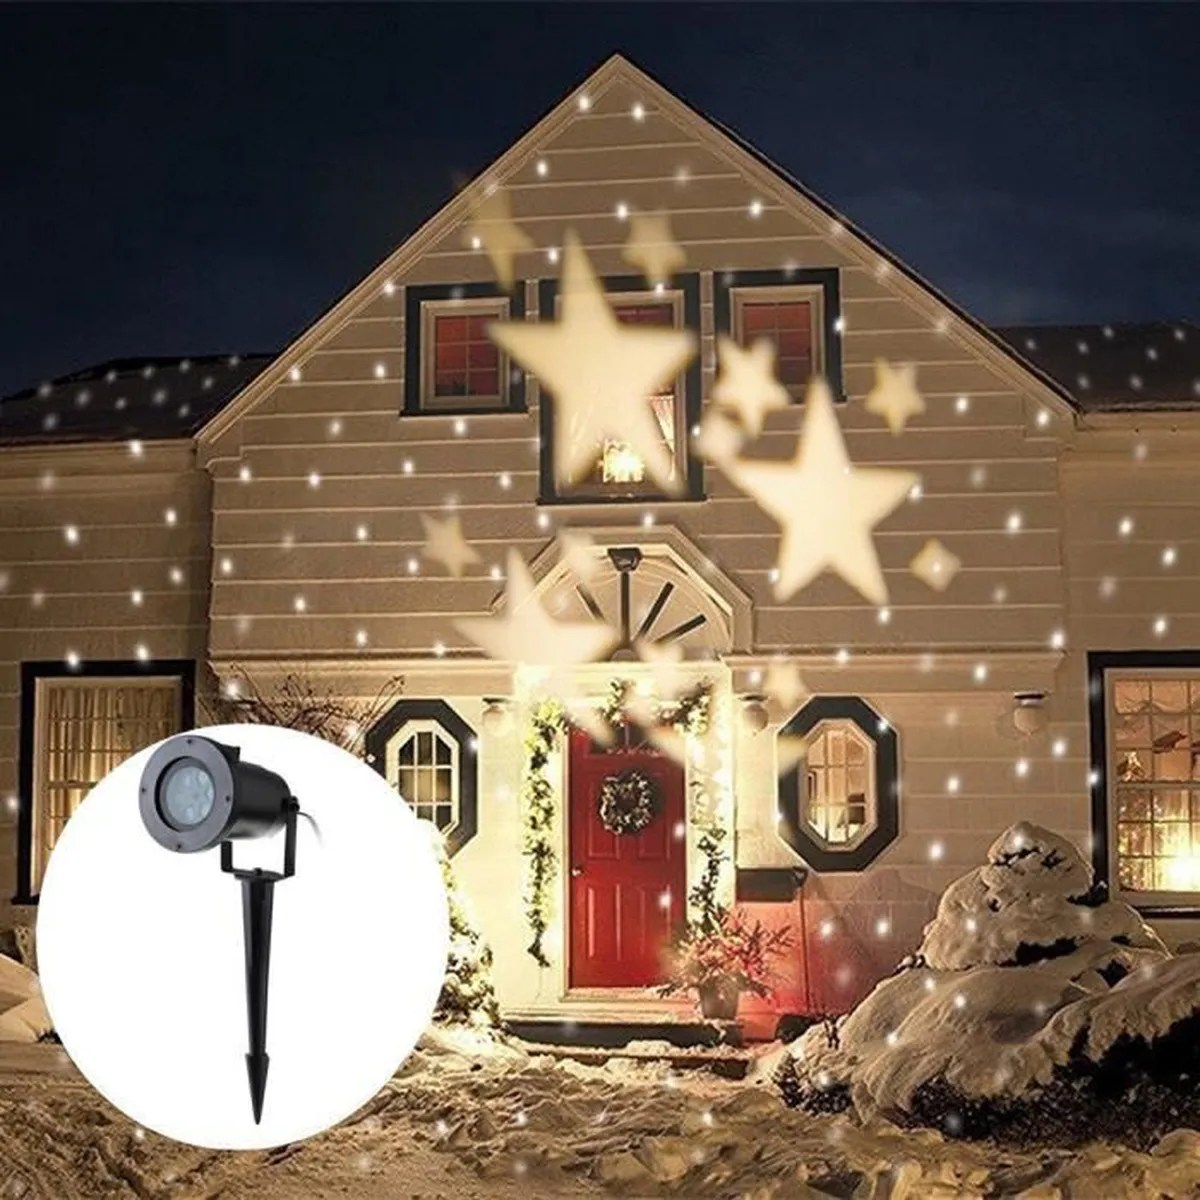 Projecteur Exterieur Mickey Decoration De Noel Led Pas Cher